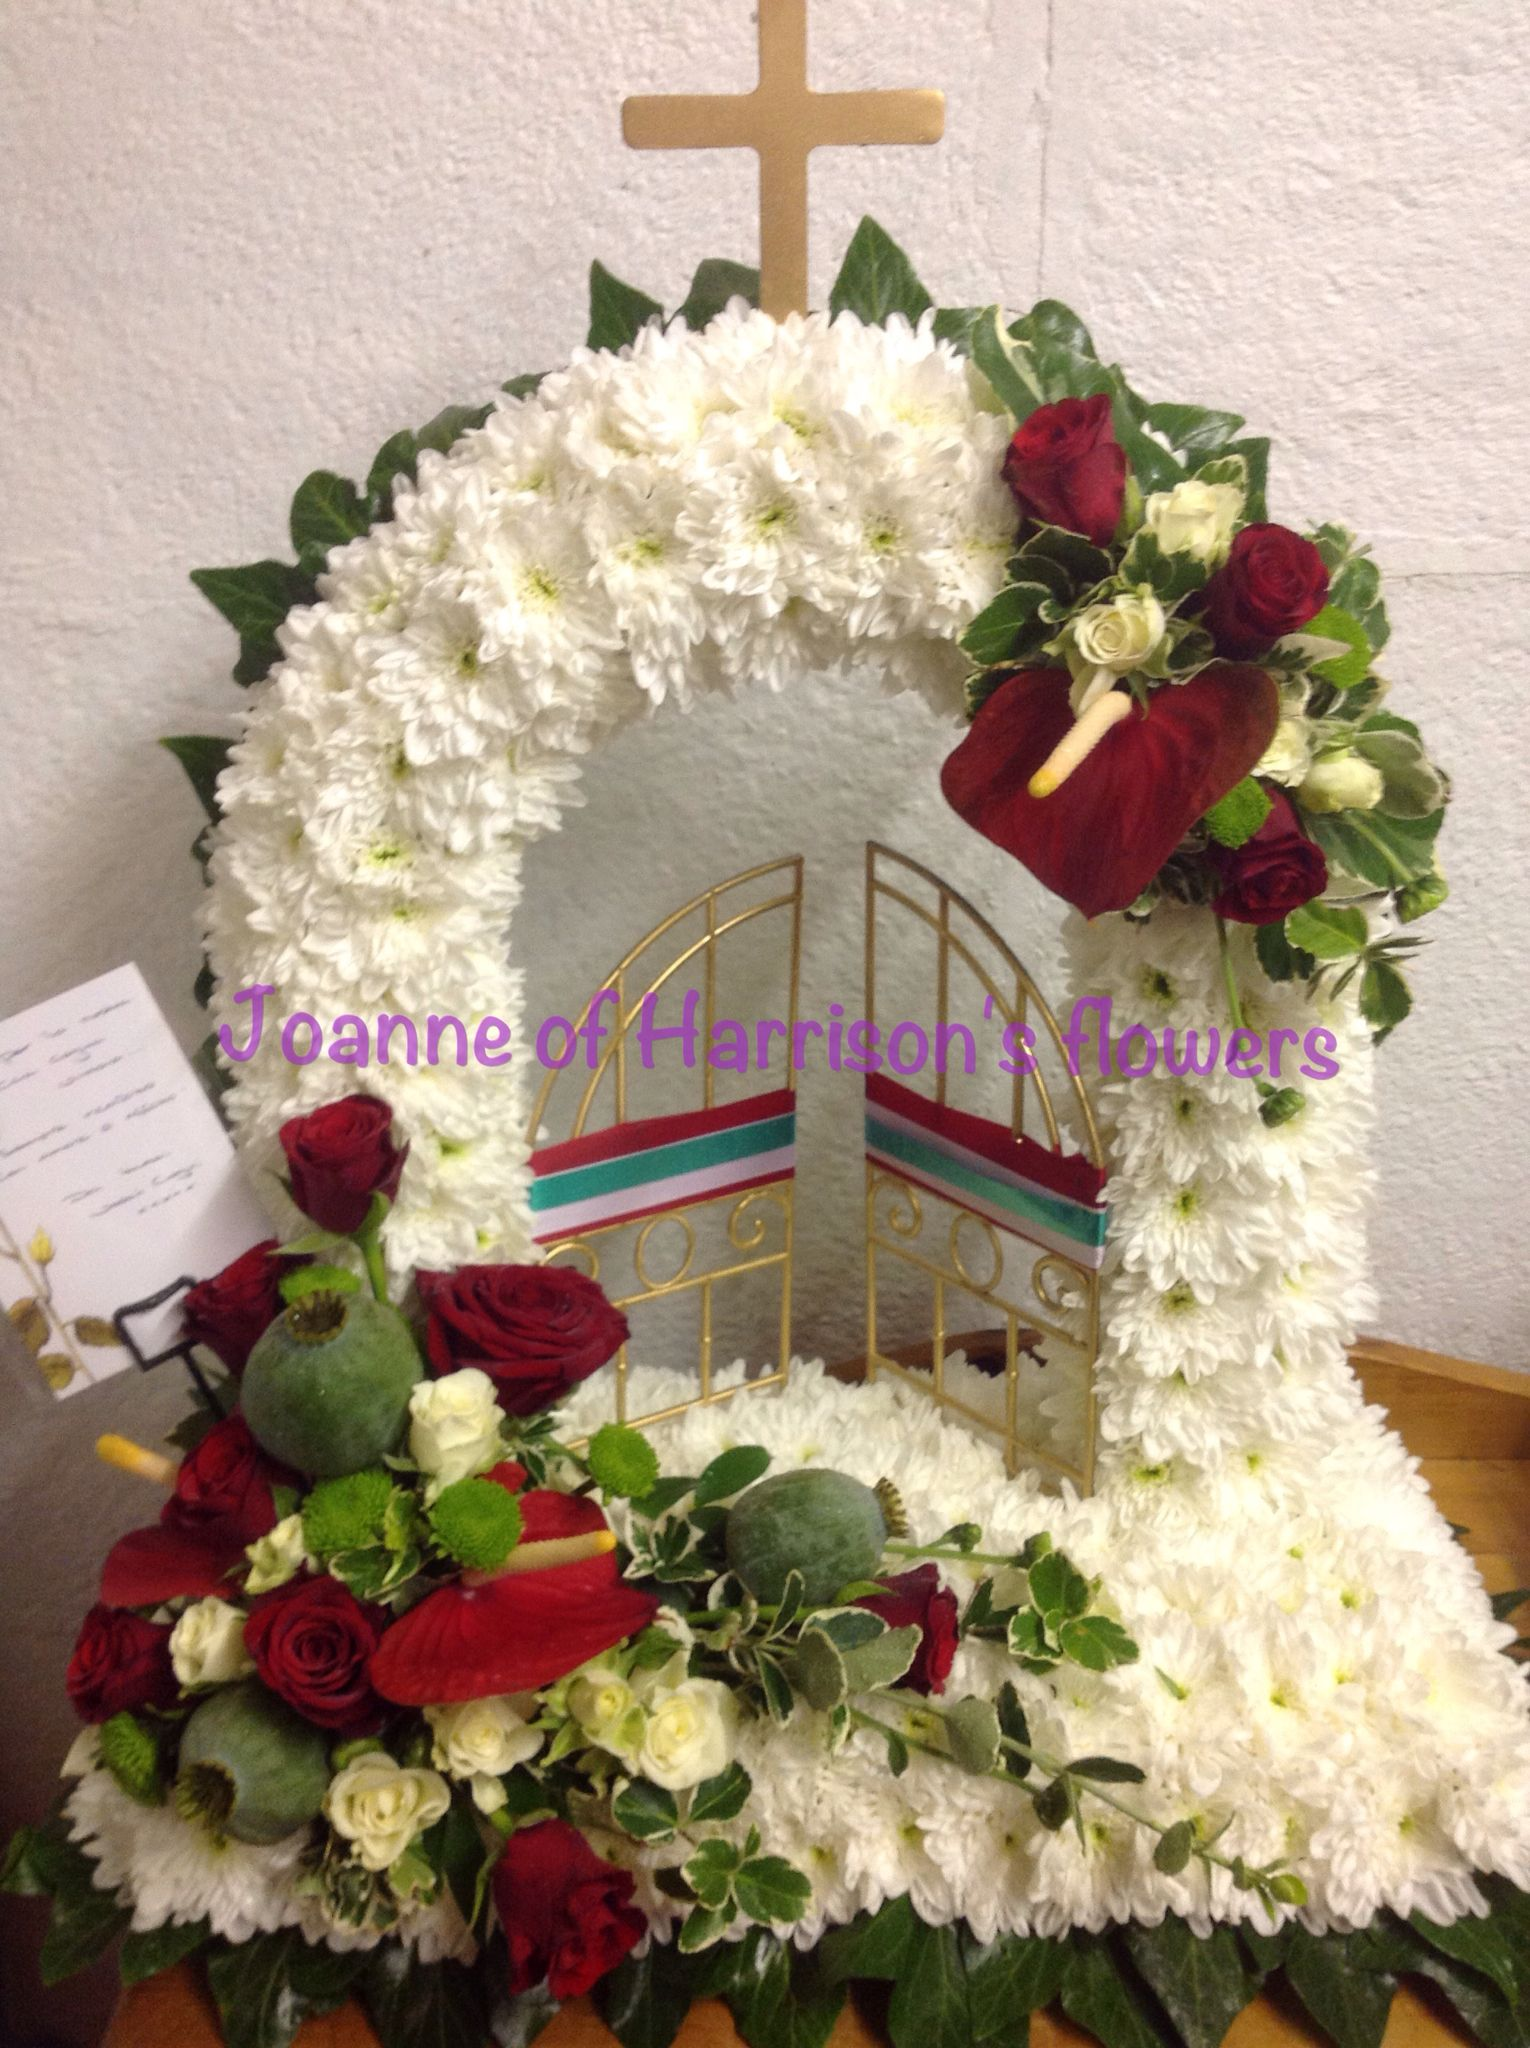 Gates of heaven in the colours of italy by joanne of harrisons gates of heaven in the colours of italy by joanne of harrisons flowers izmirmasajfo Choice Image